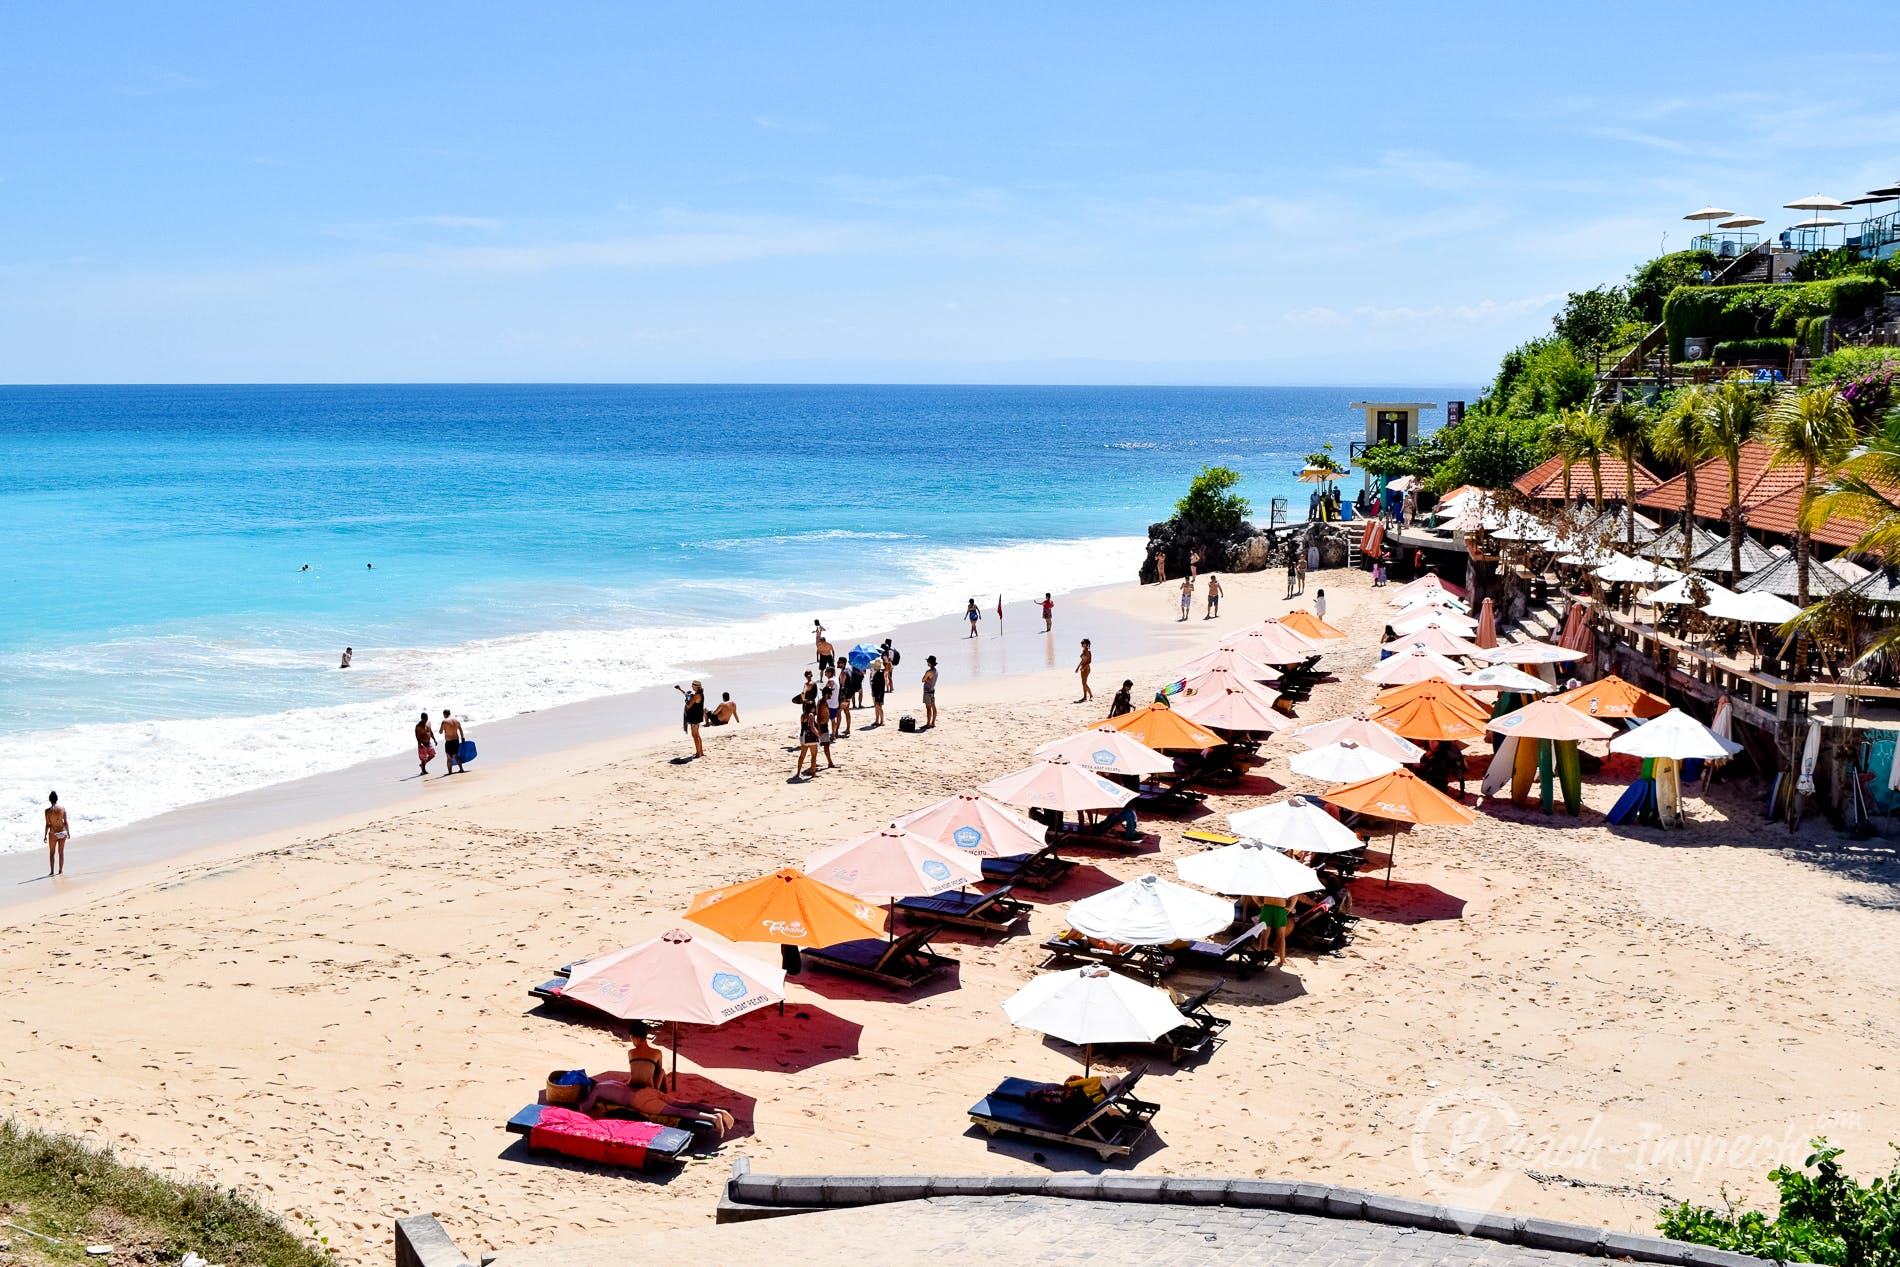 Playa Dreamland Beach, Bali, Indonesia